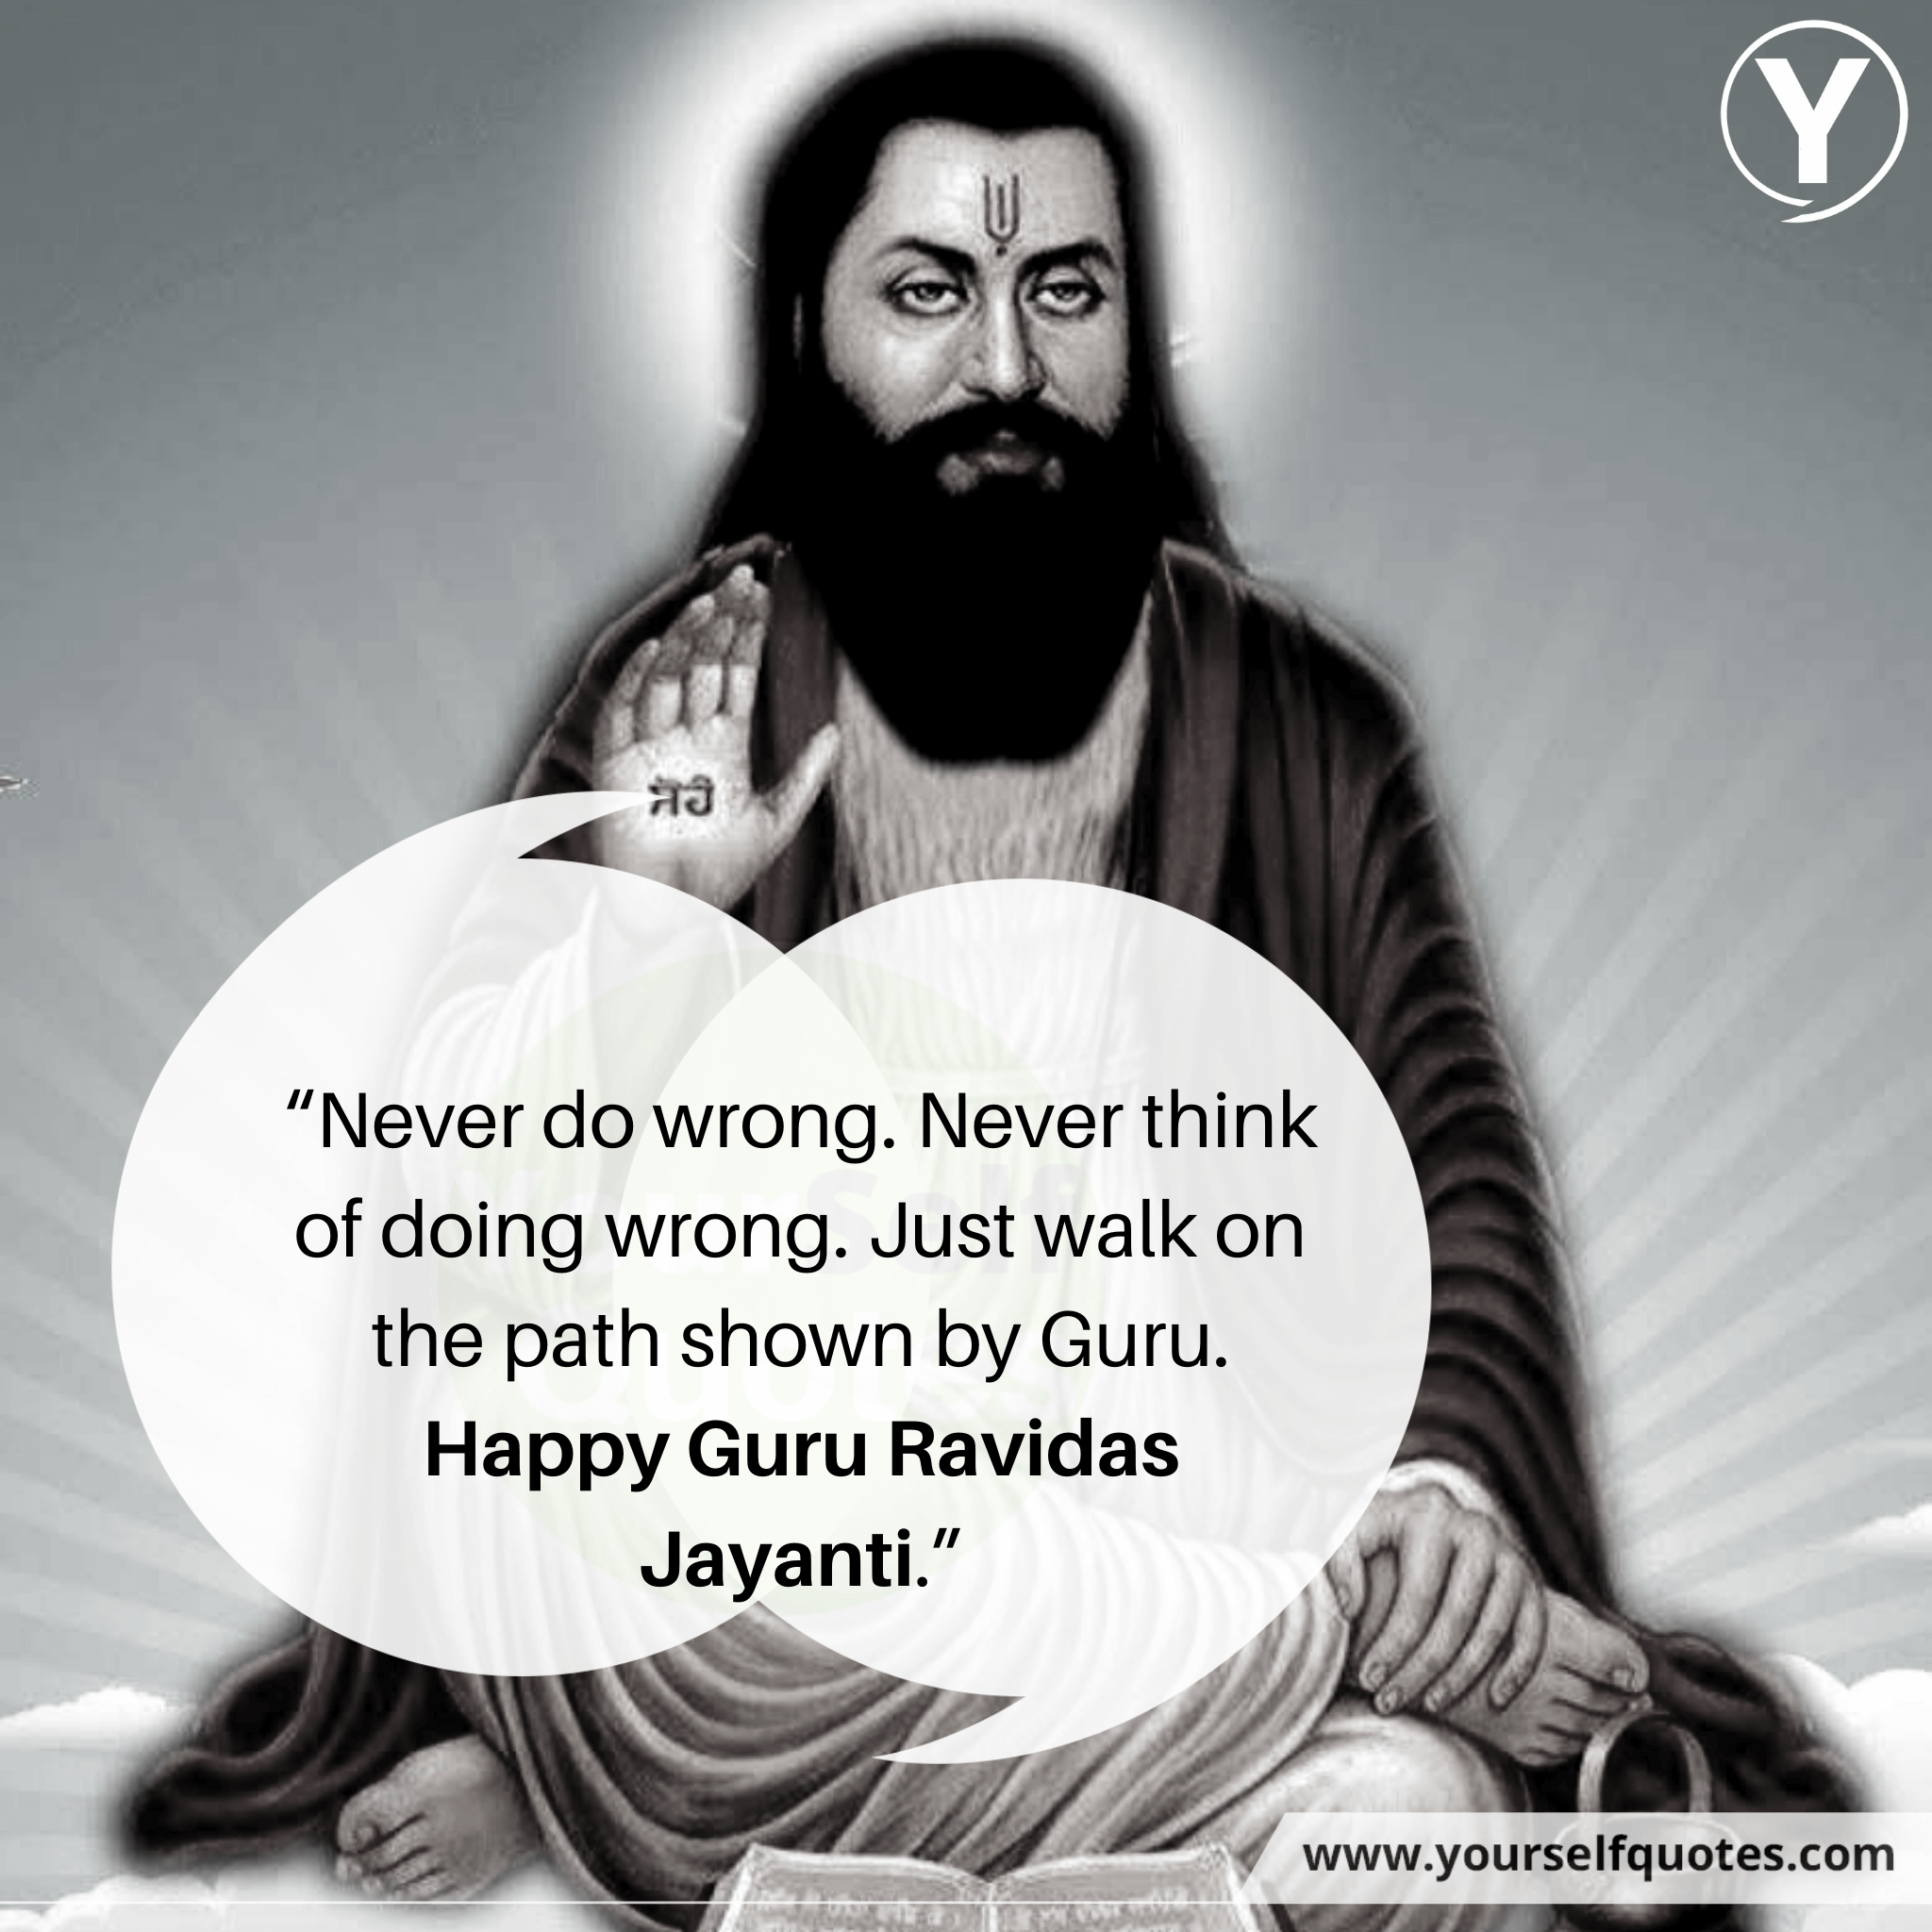 Happy Ravidas Jayanti Quotes